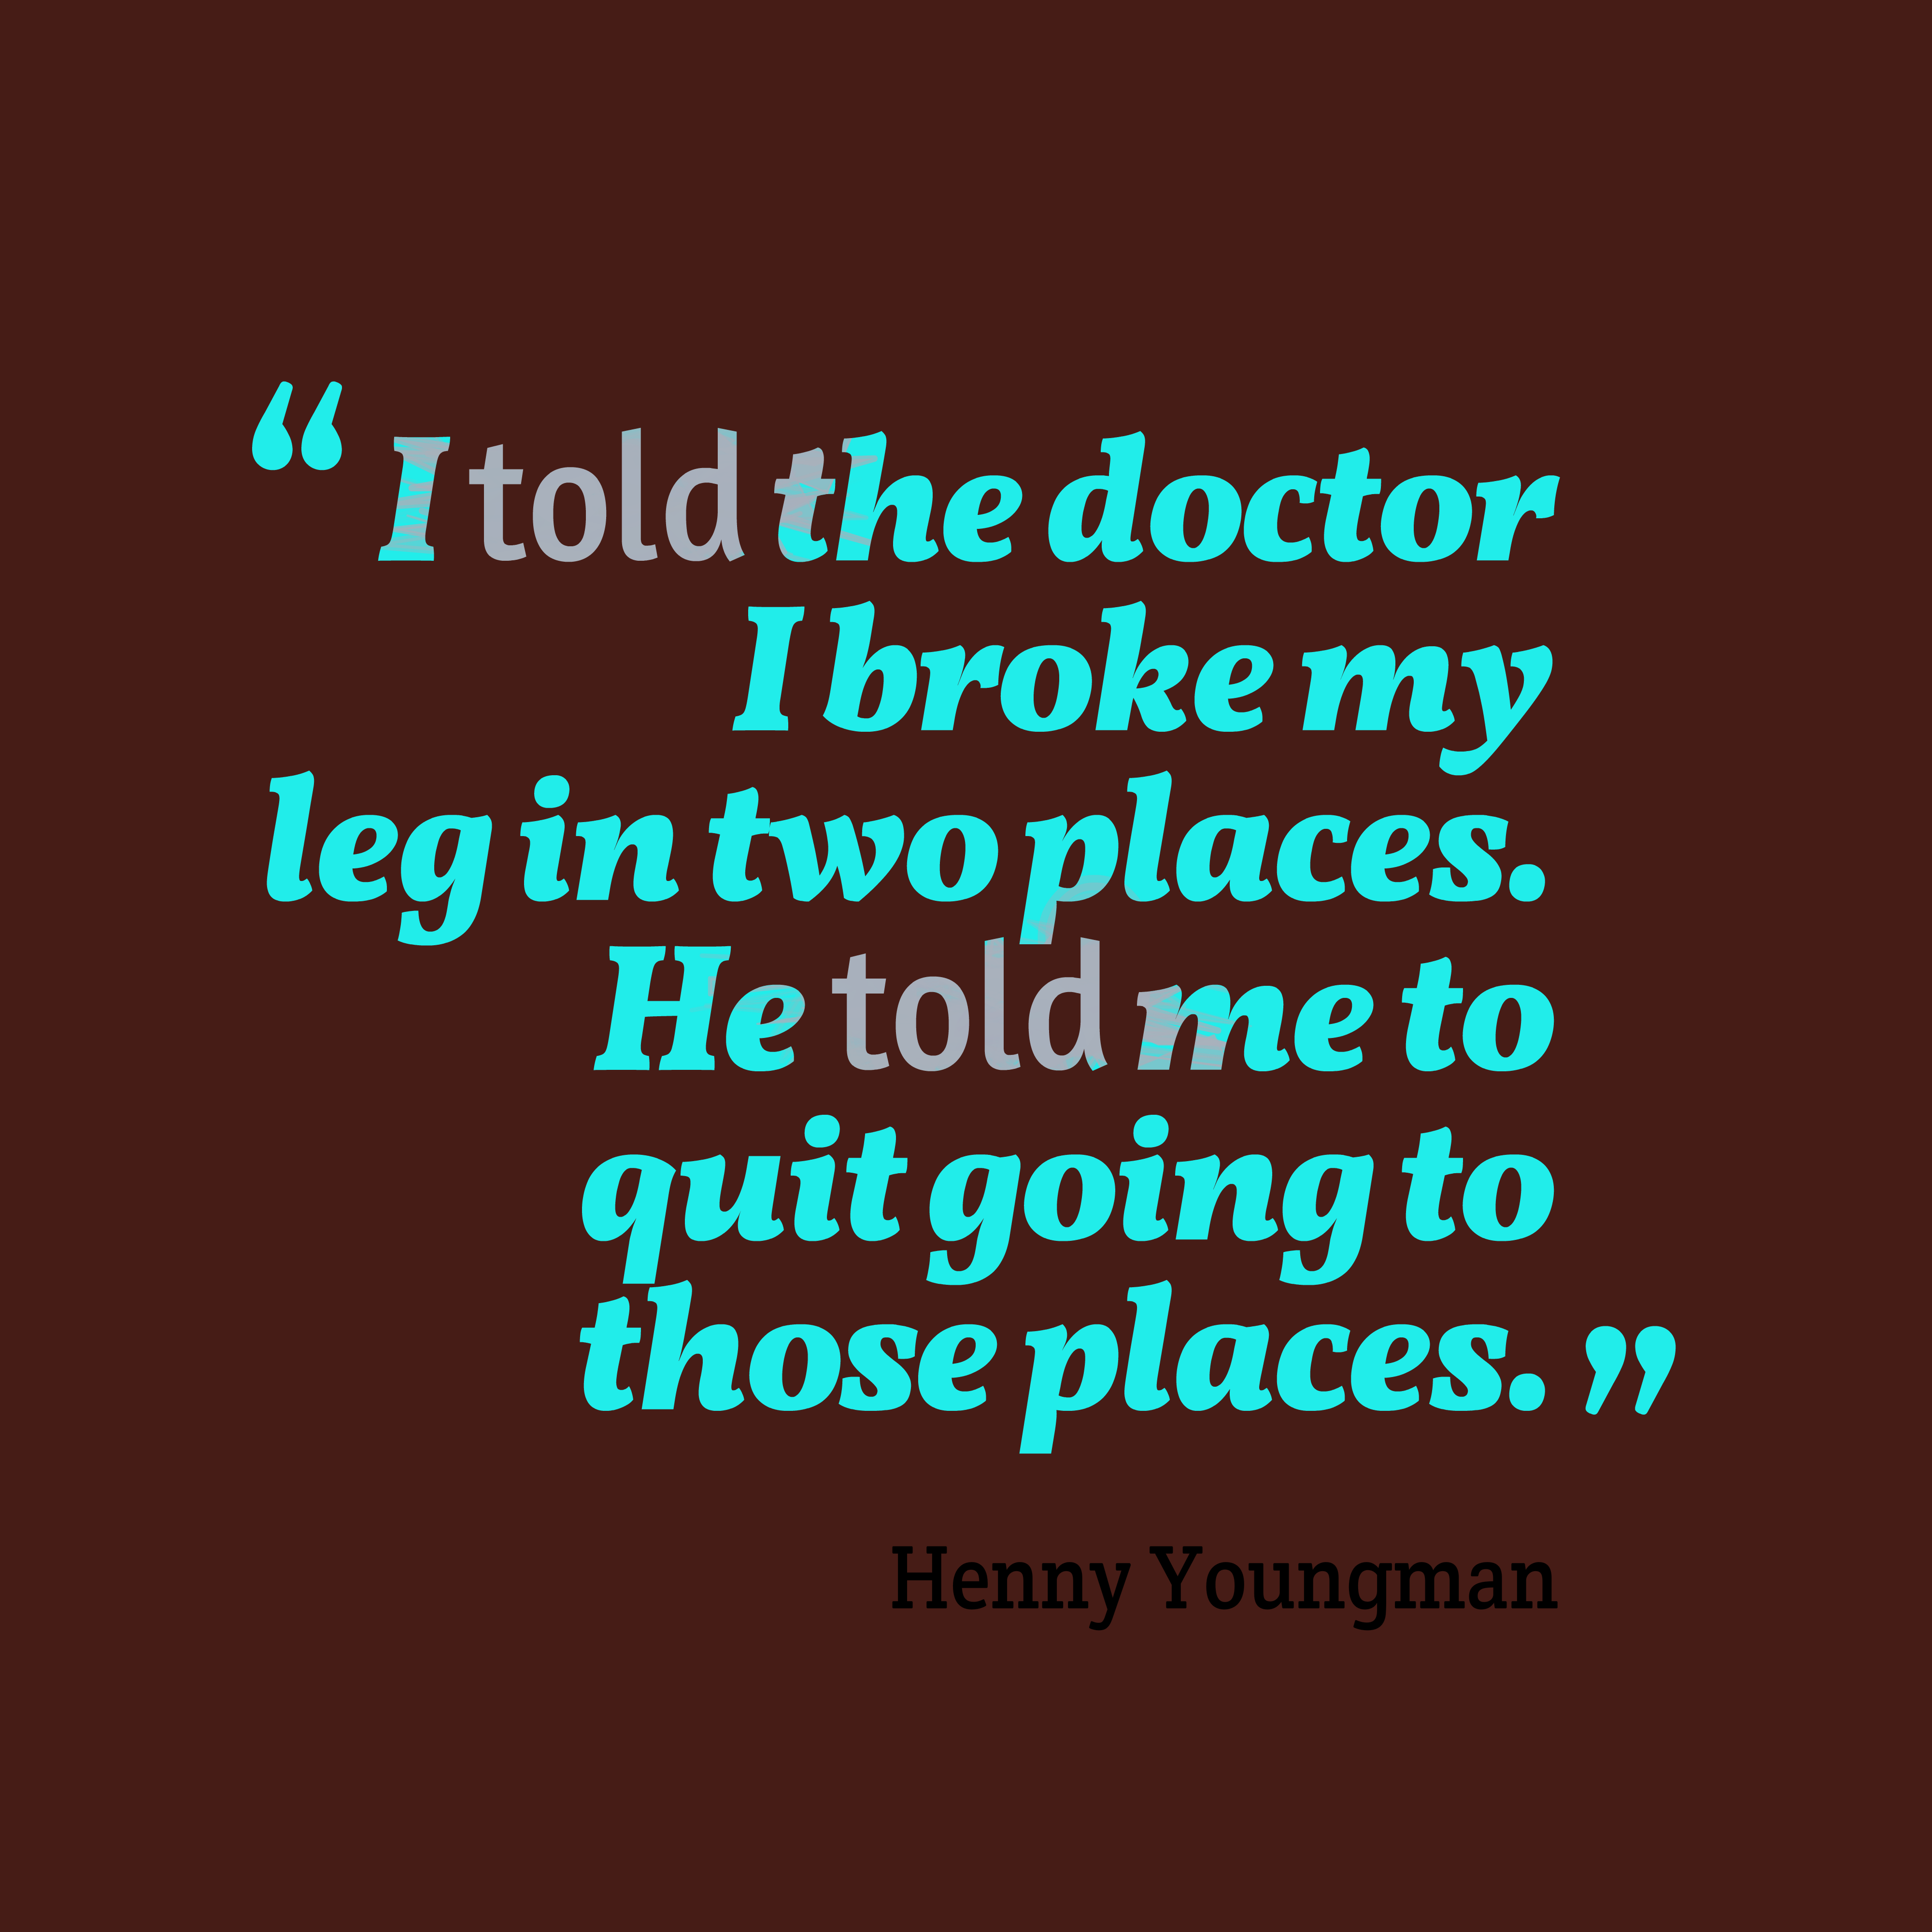 Quotes image of I told the doctor I broke my leg in two places. He told me to quit going to those places.